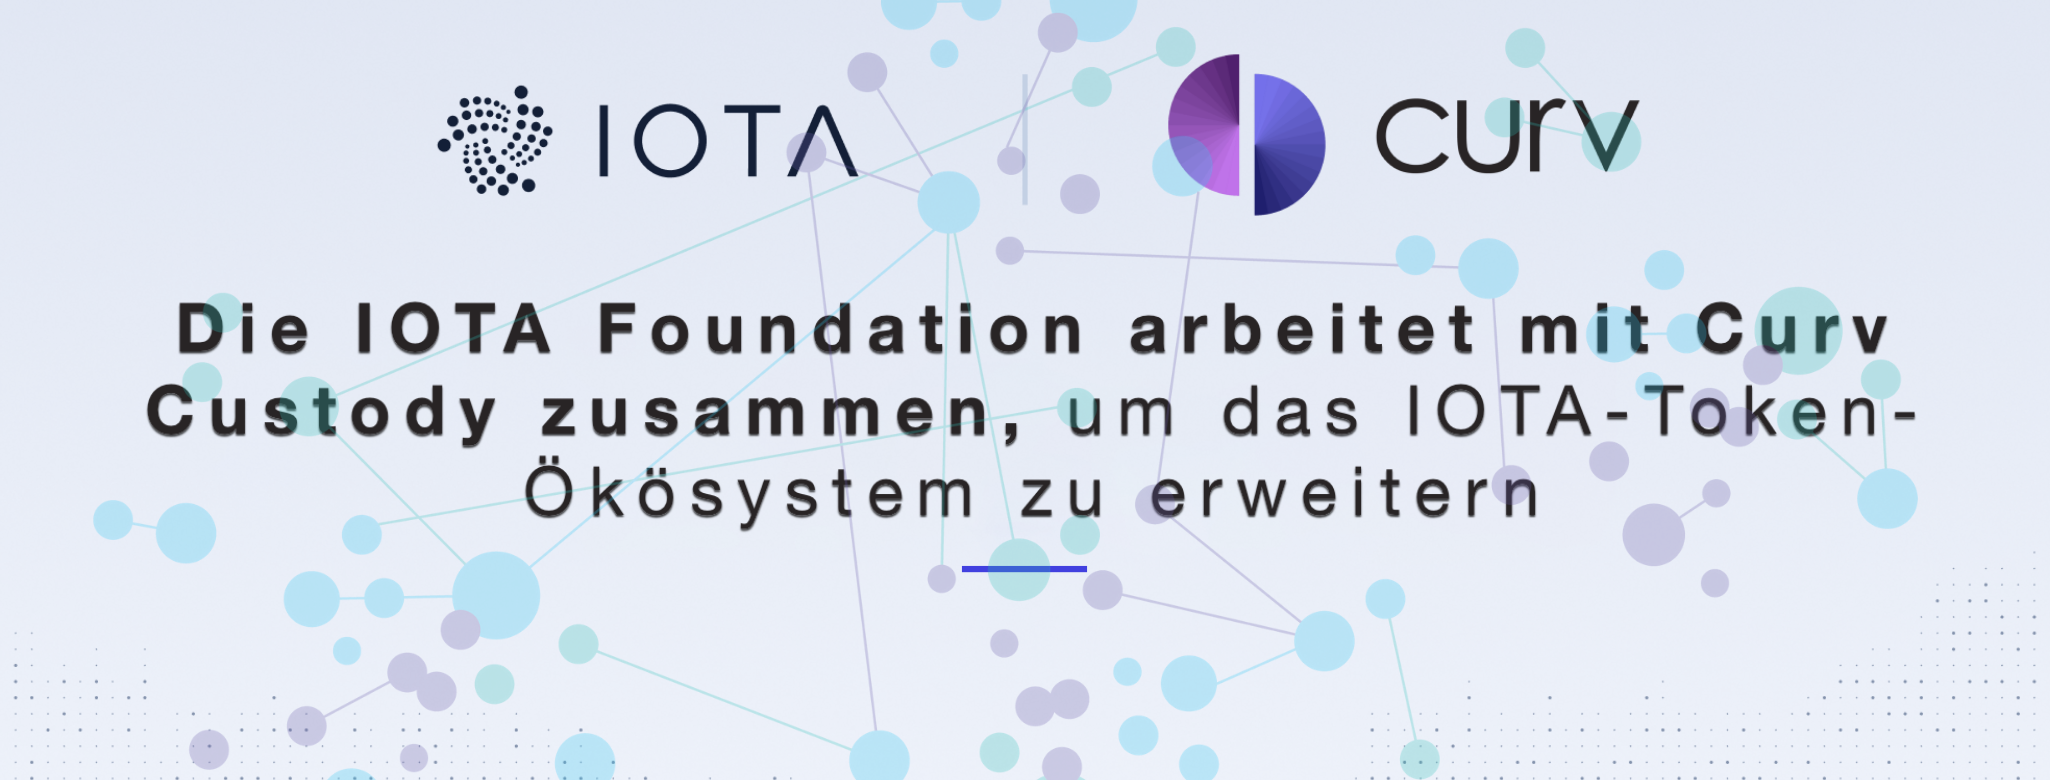 iota partners with Curv custody